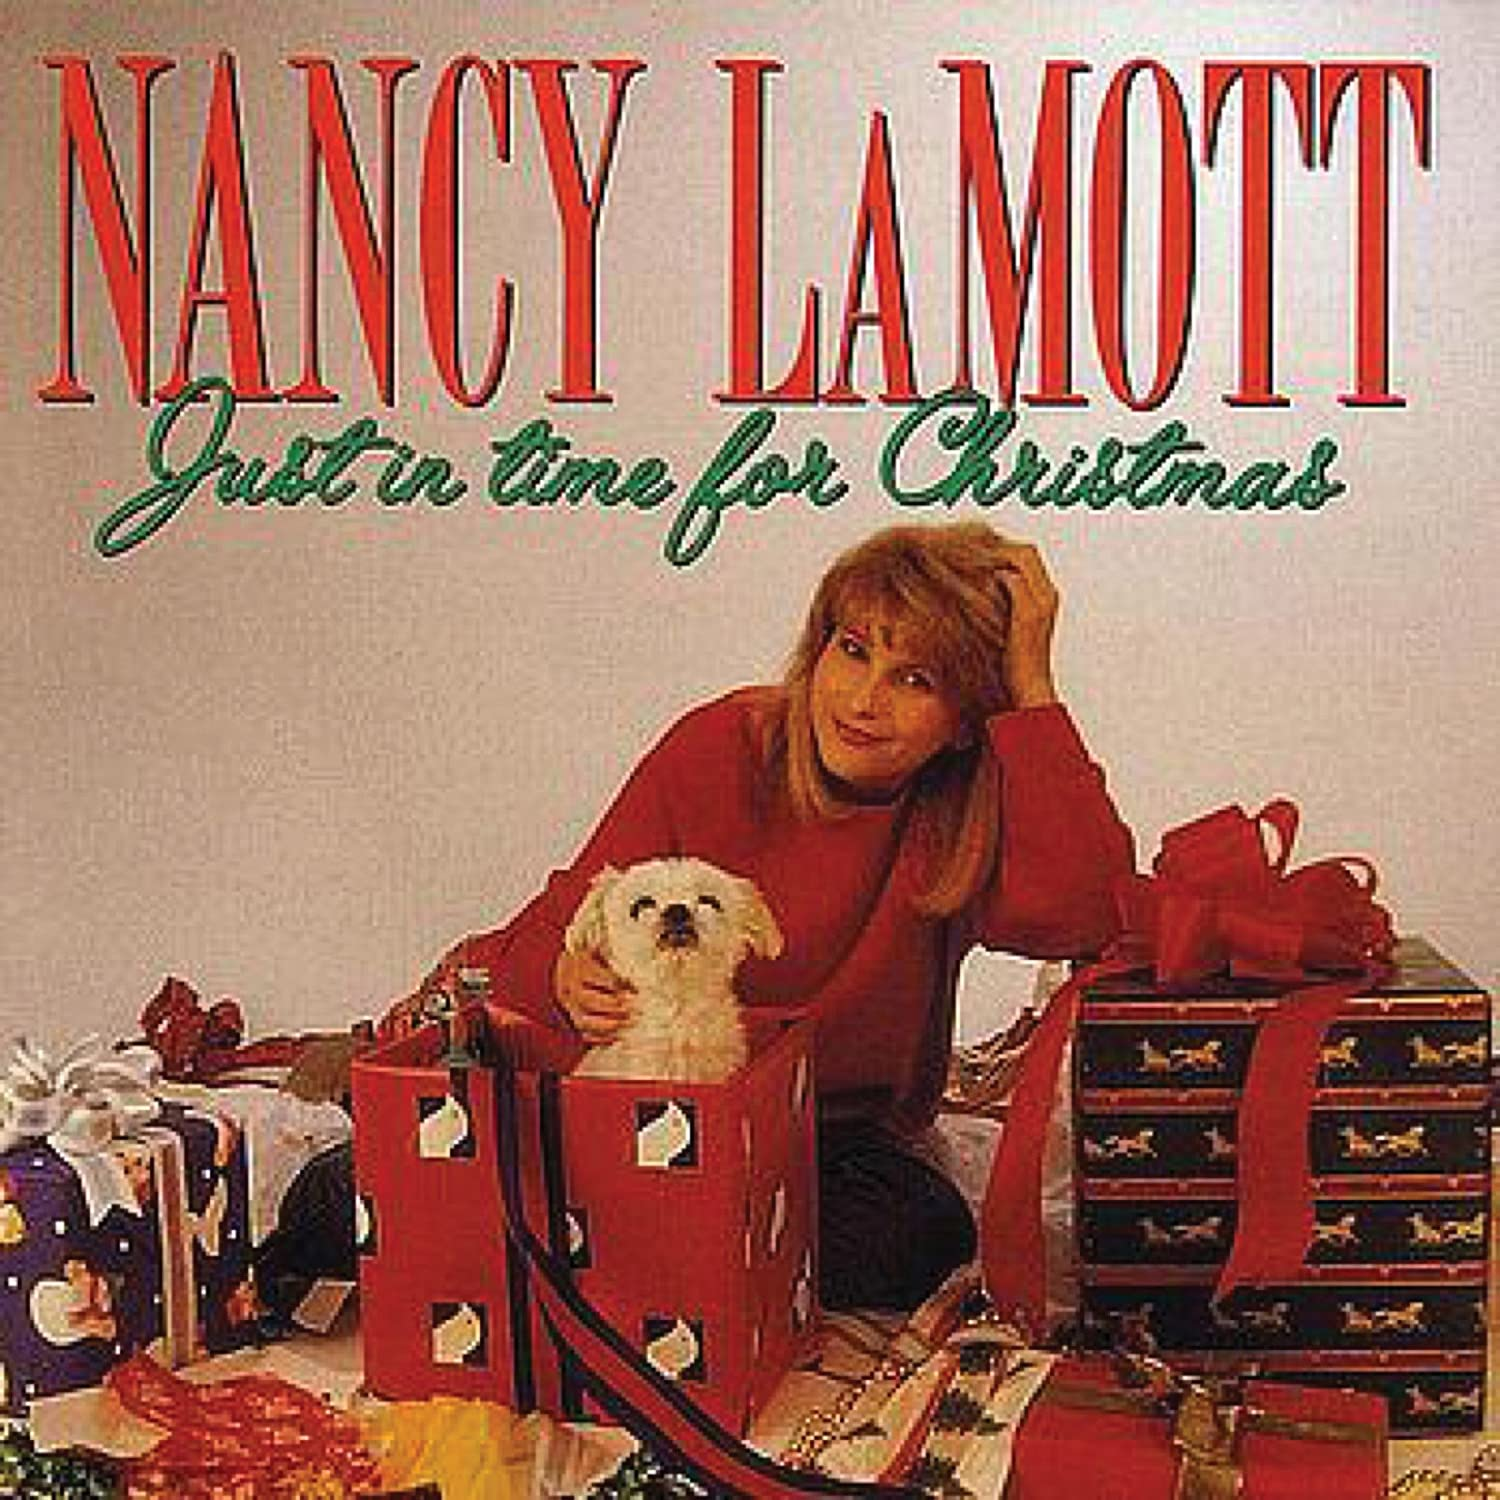 Nancy Lamott, Nancy LaMott - Just In Time For Christmas - Amazon.com ...